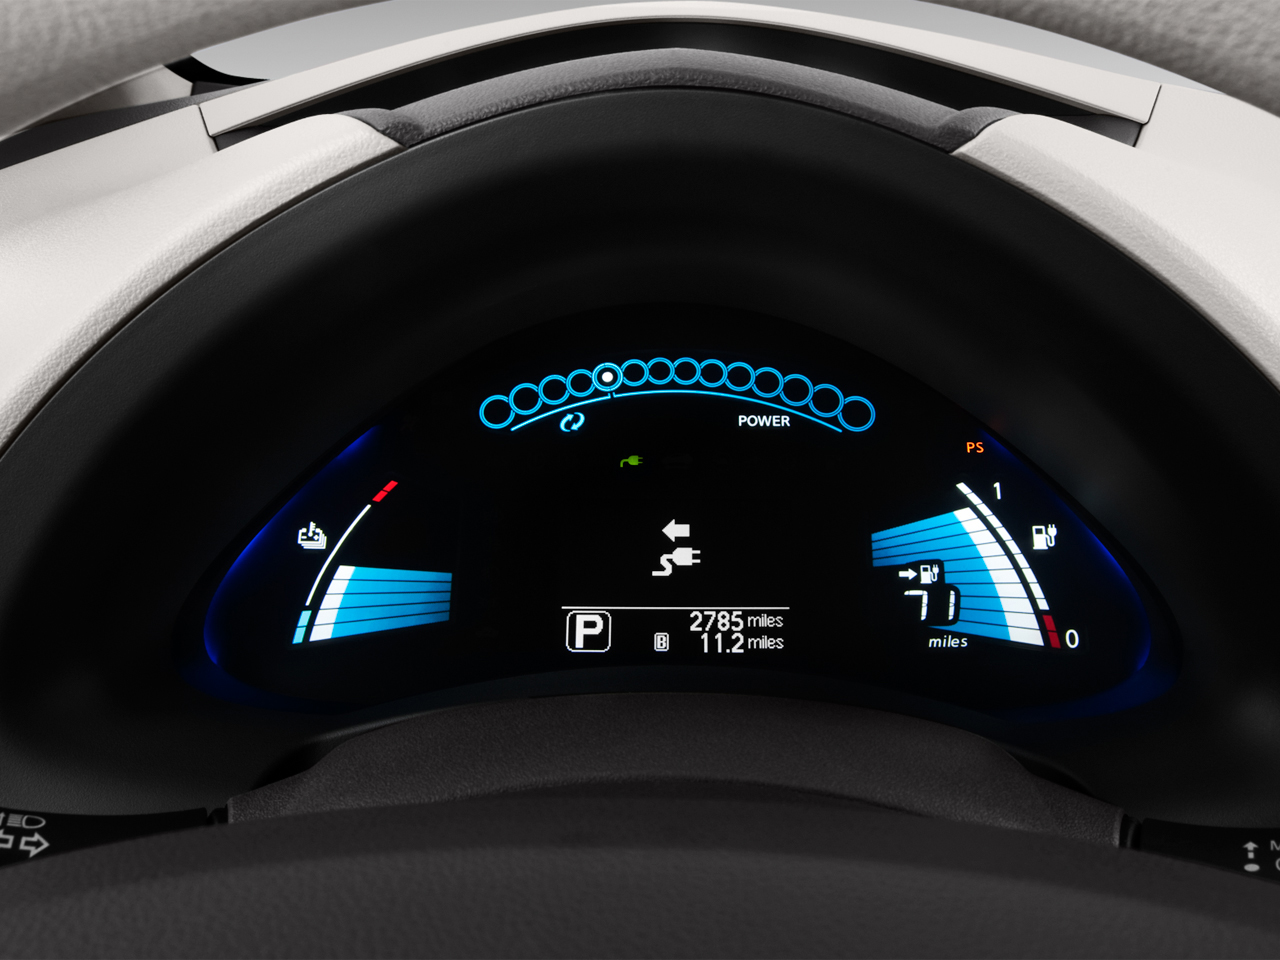 Updated Nissan Leaf Guess O Meter To Help Cut Range Anxiety